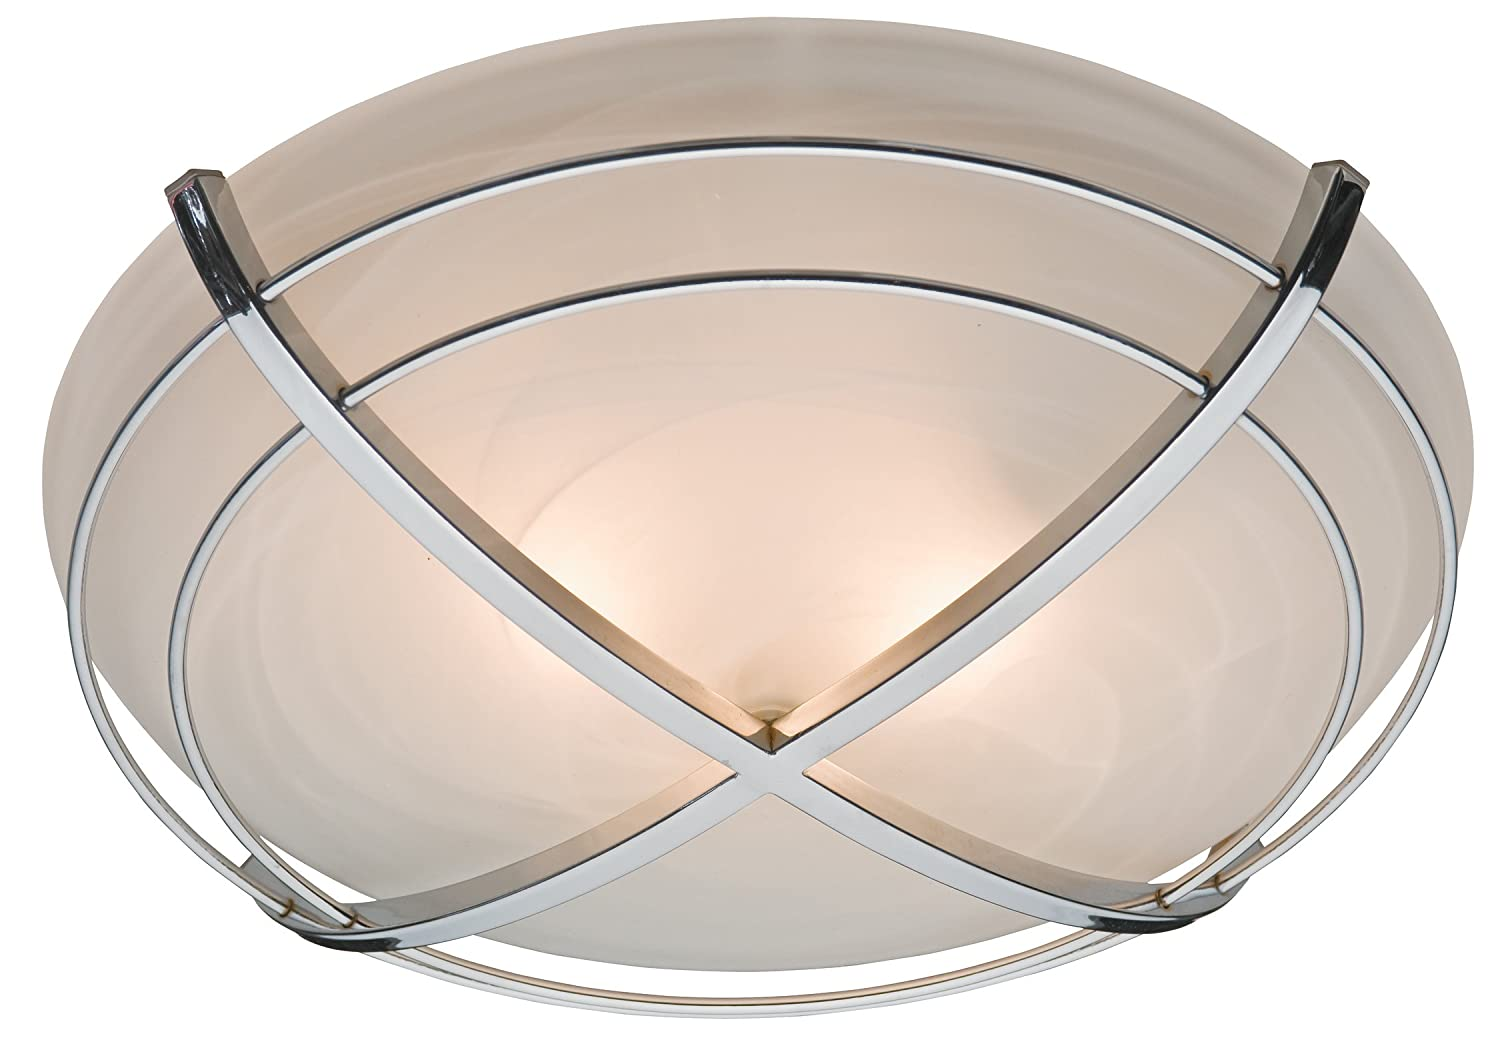 Delicieux Hunter 81030 Halcyon Bathroom Exhaust Fan And Light In Contemporary Cast  Chrome     Amazon.com